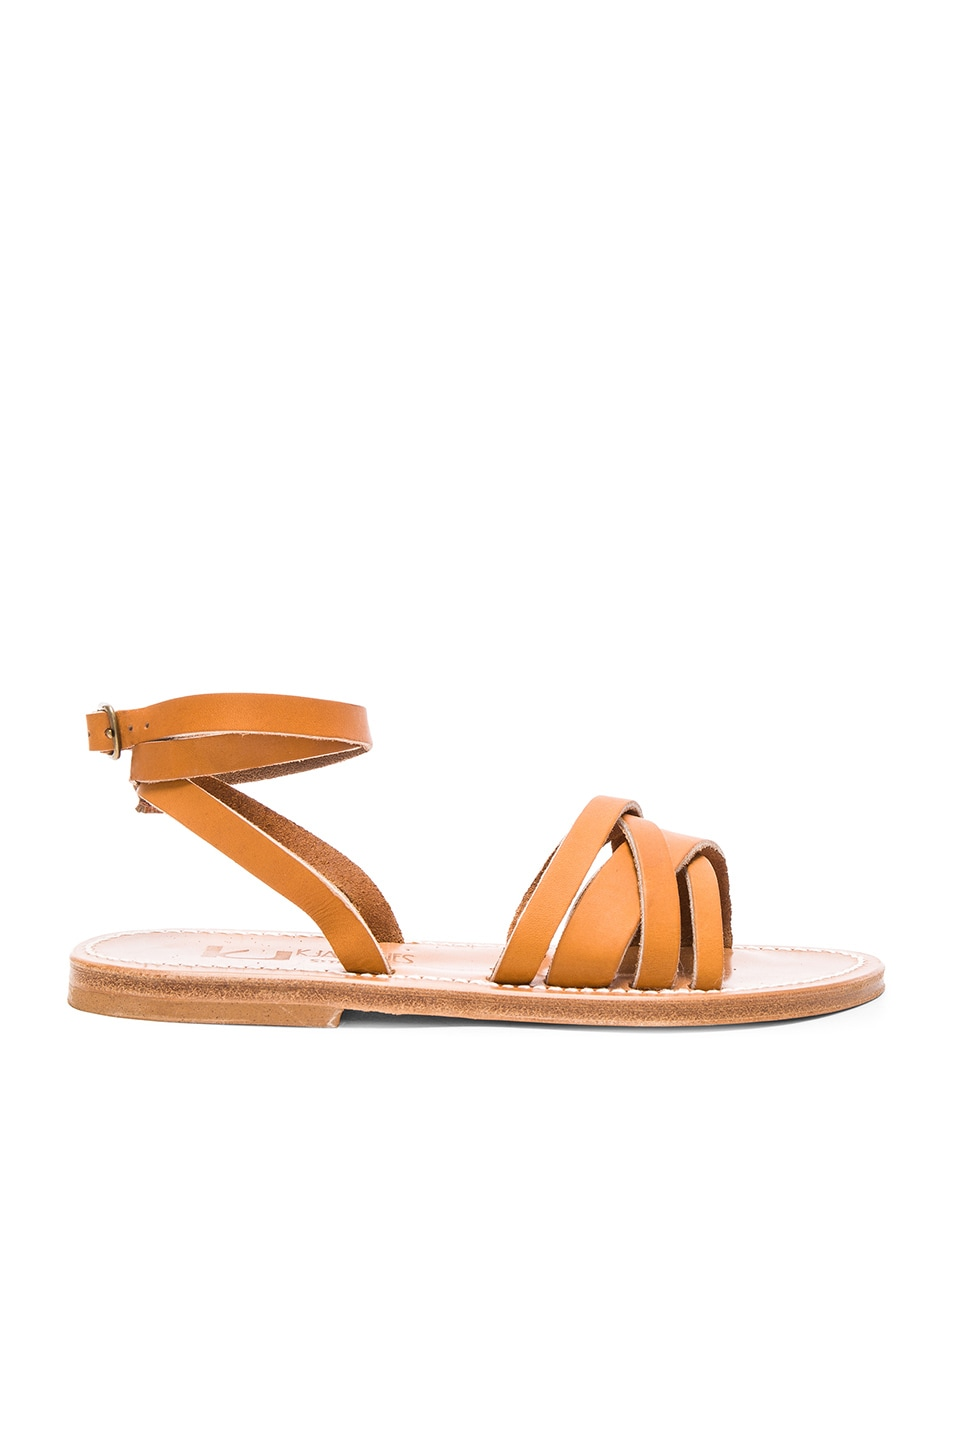 Image 1 of K Jacques Leather Galapagos Sandals in Natural